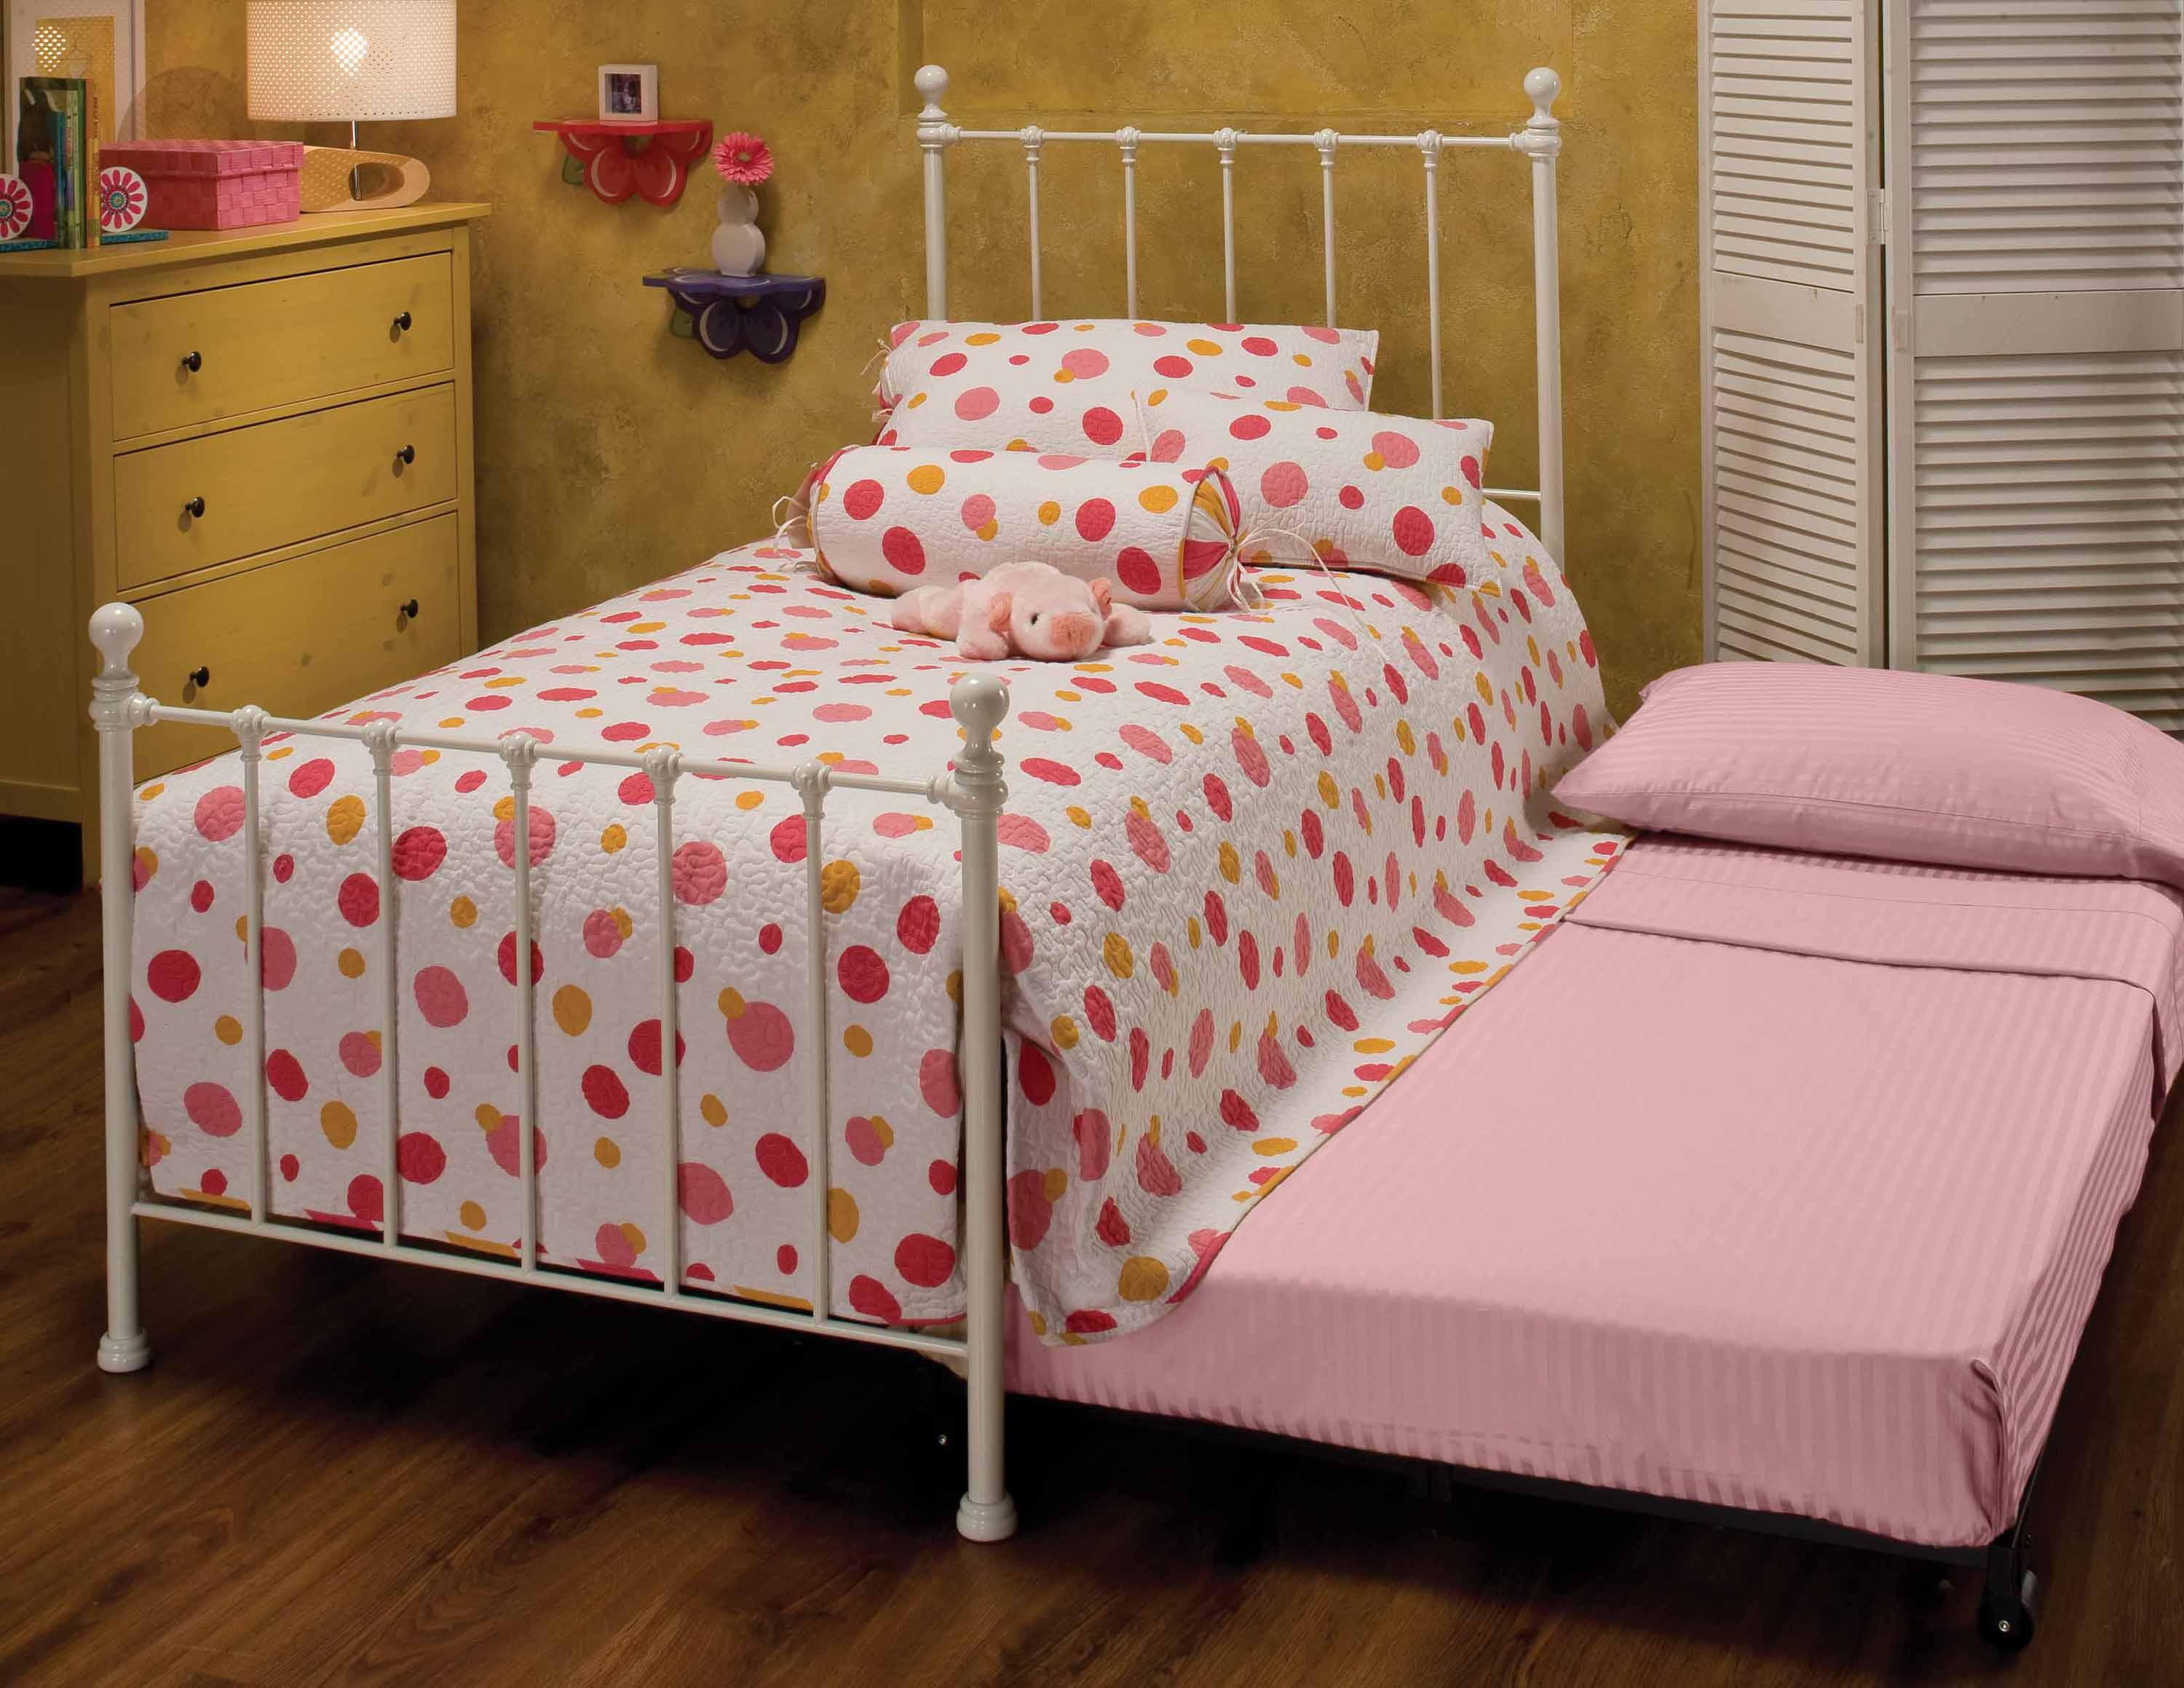 Hillsdale Metal Beds Twin White Molly Bed with Underbed Trundle - Item Number: 1222BTWHTR